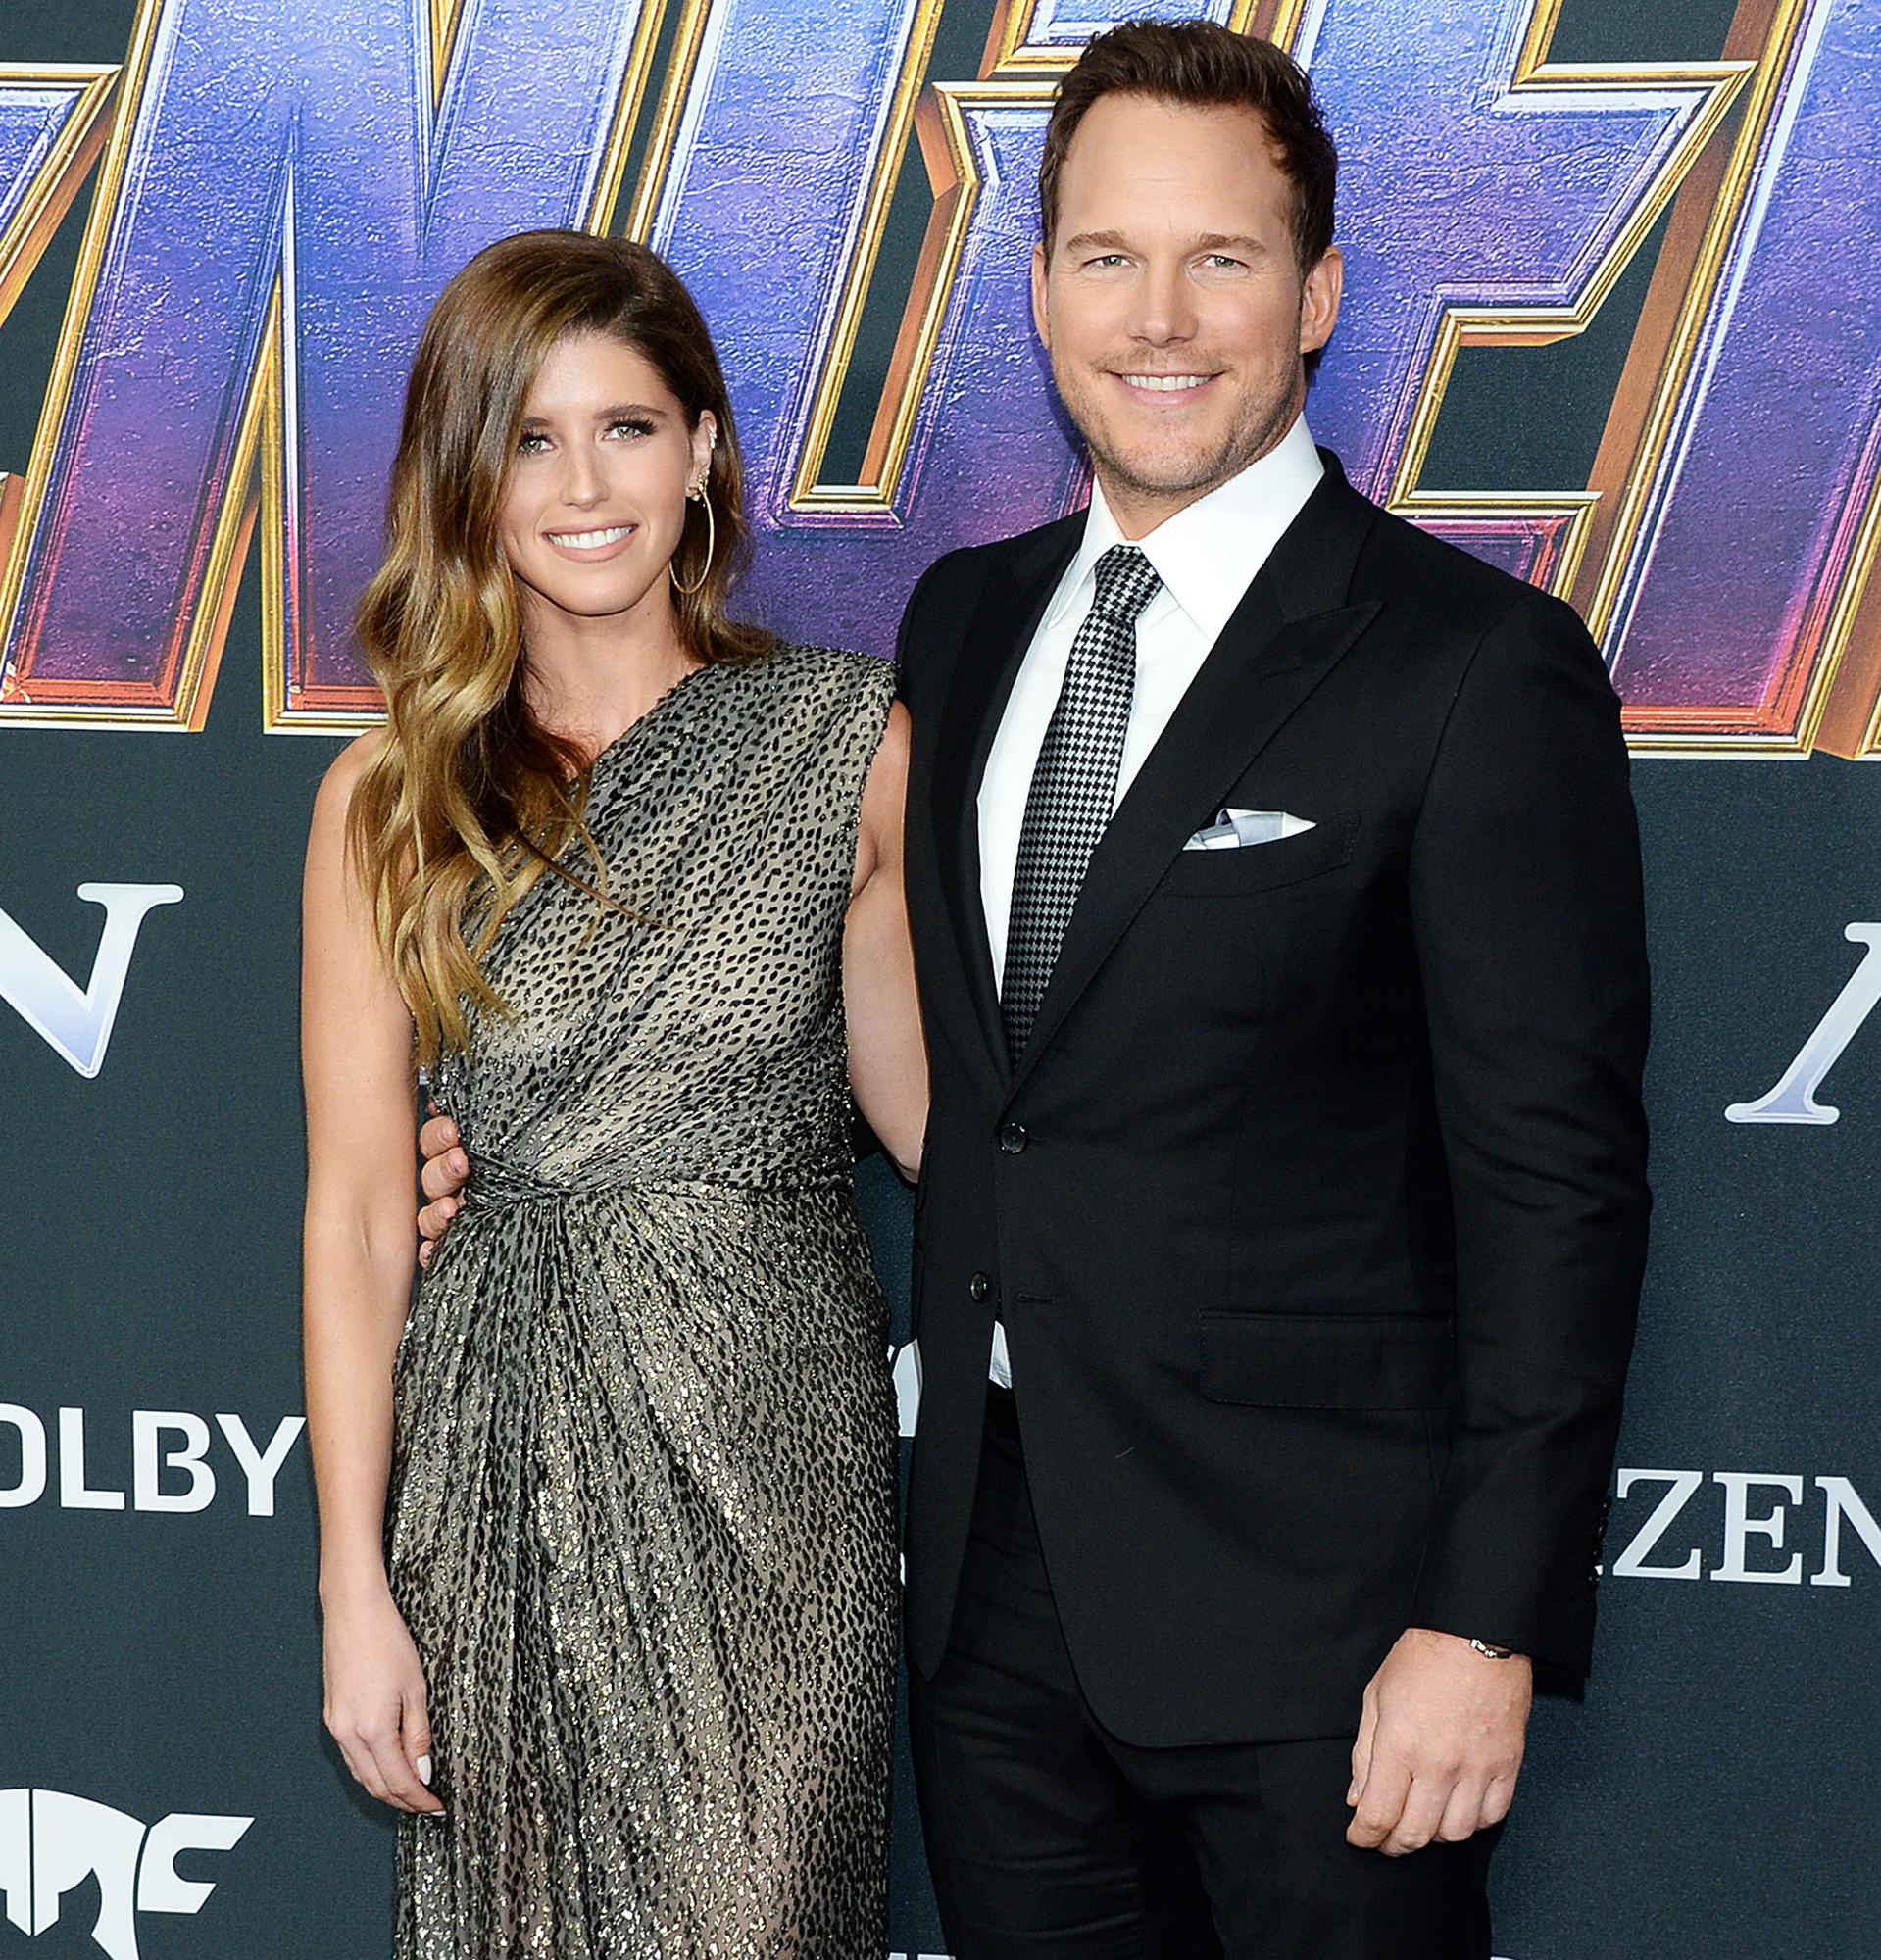 Katherine Schwarzenegger Gives Glimpse of Her and Chris Pratt's Daughter Lyla in Matching Moment